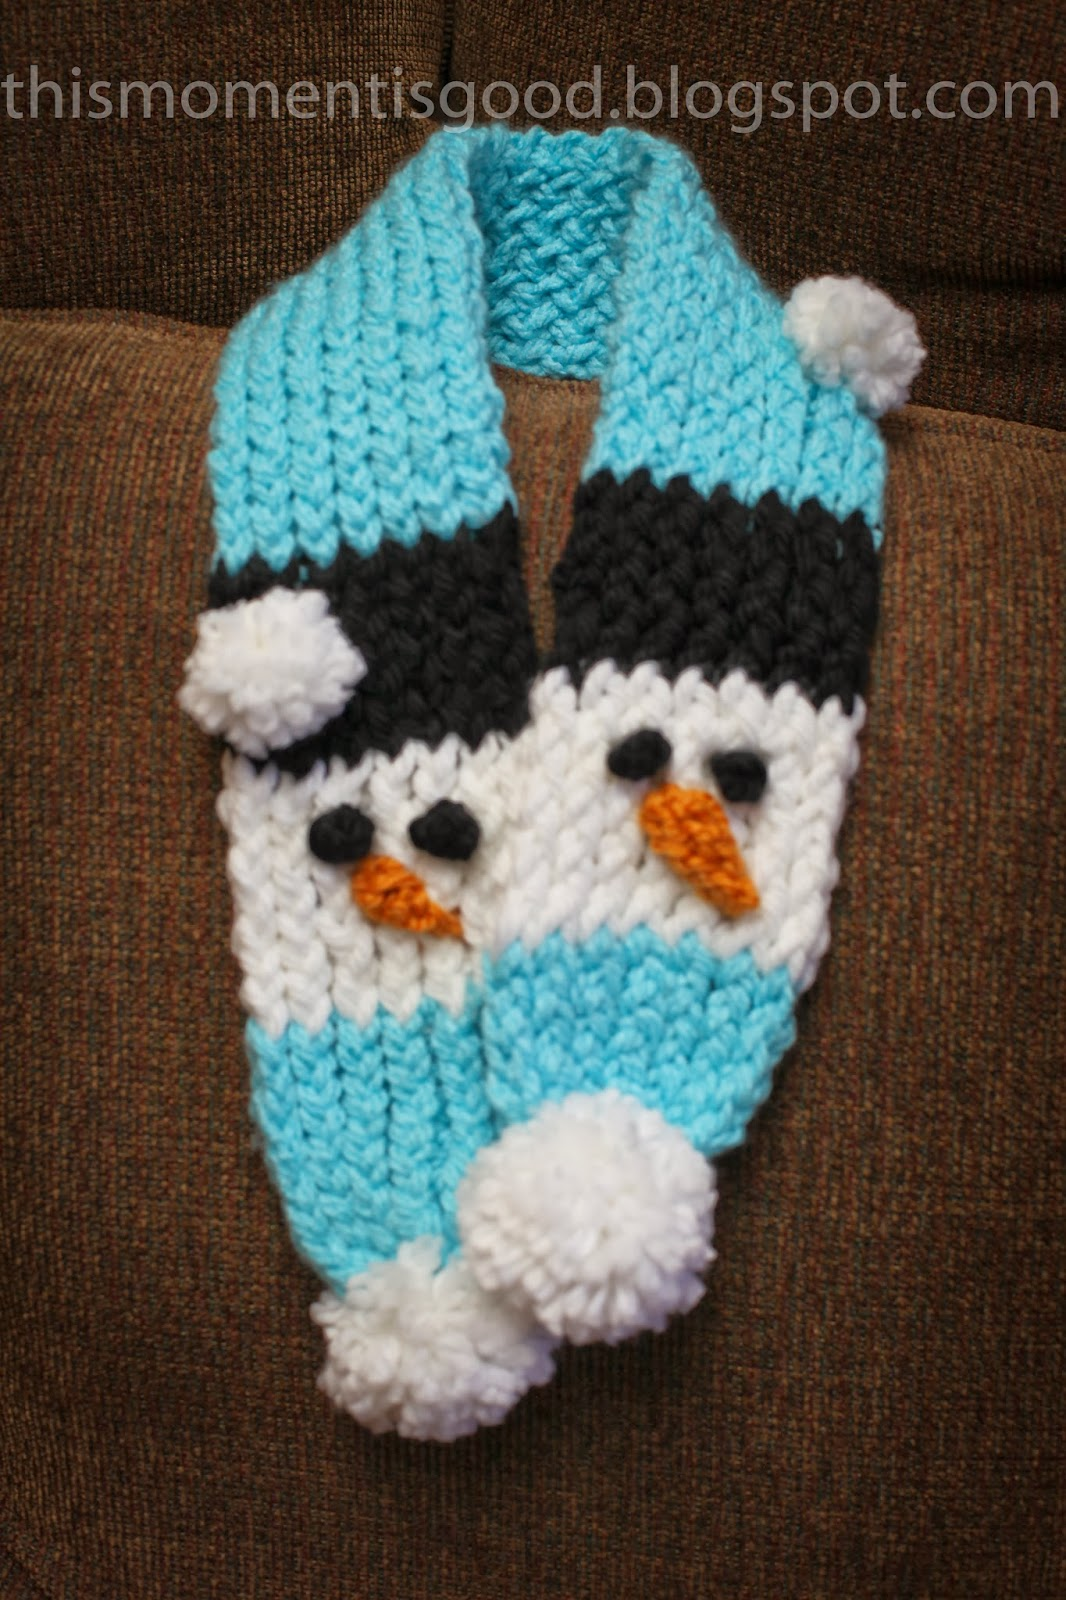 LOOM KNIT: SNOWMAN SCARF | Loom Knitting by This Moment is Good!